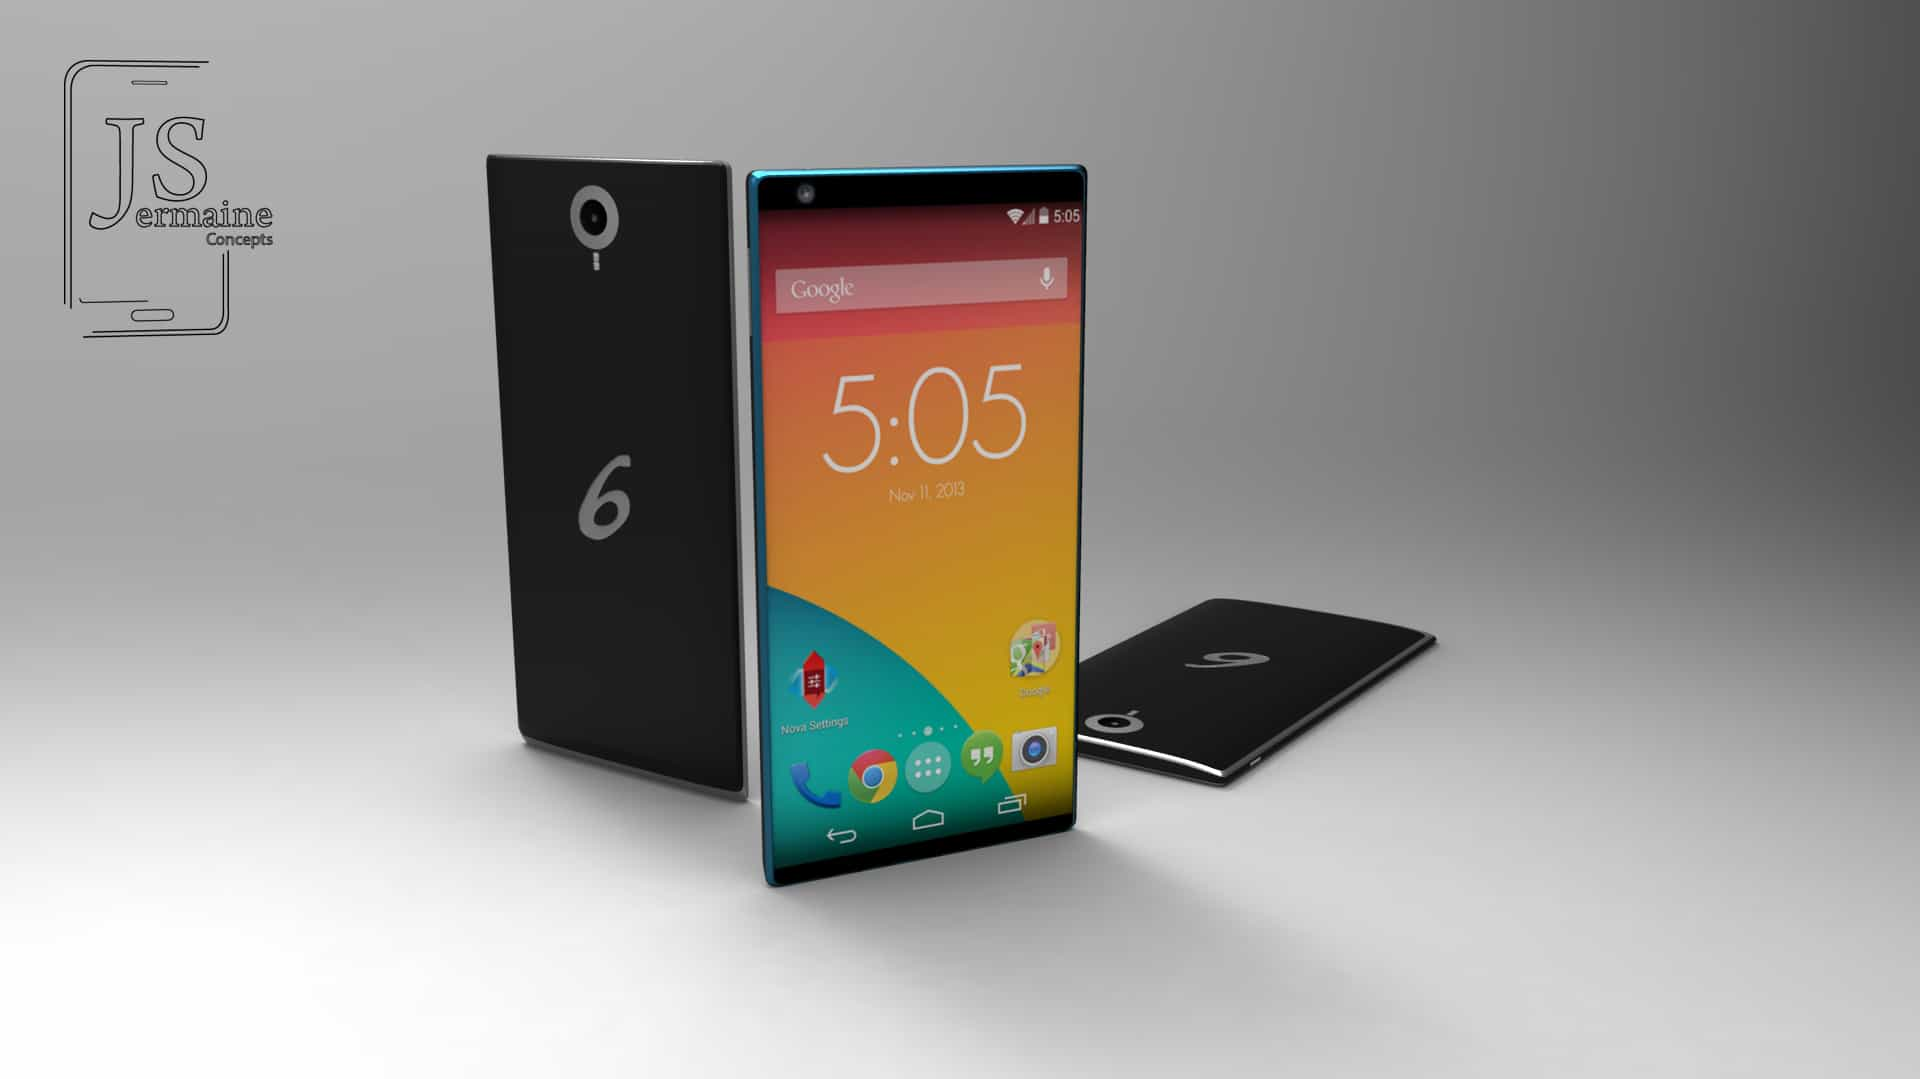 top flagship smartphones to launch 8gb ram 4k display and water floating price pony. Black Bedroom Furniture Sets. Home Design Ideas